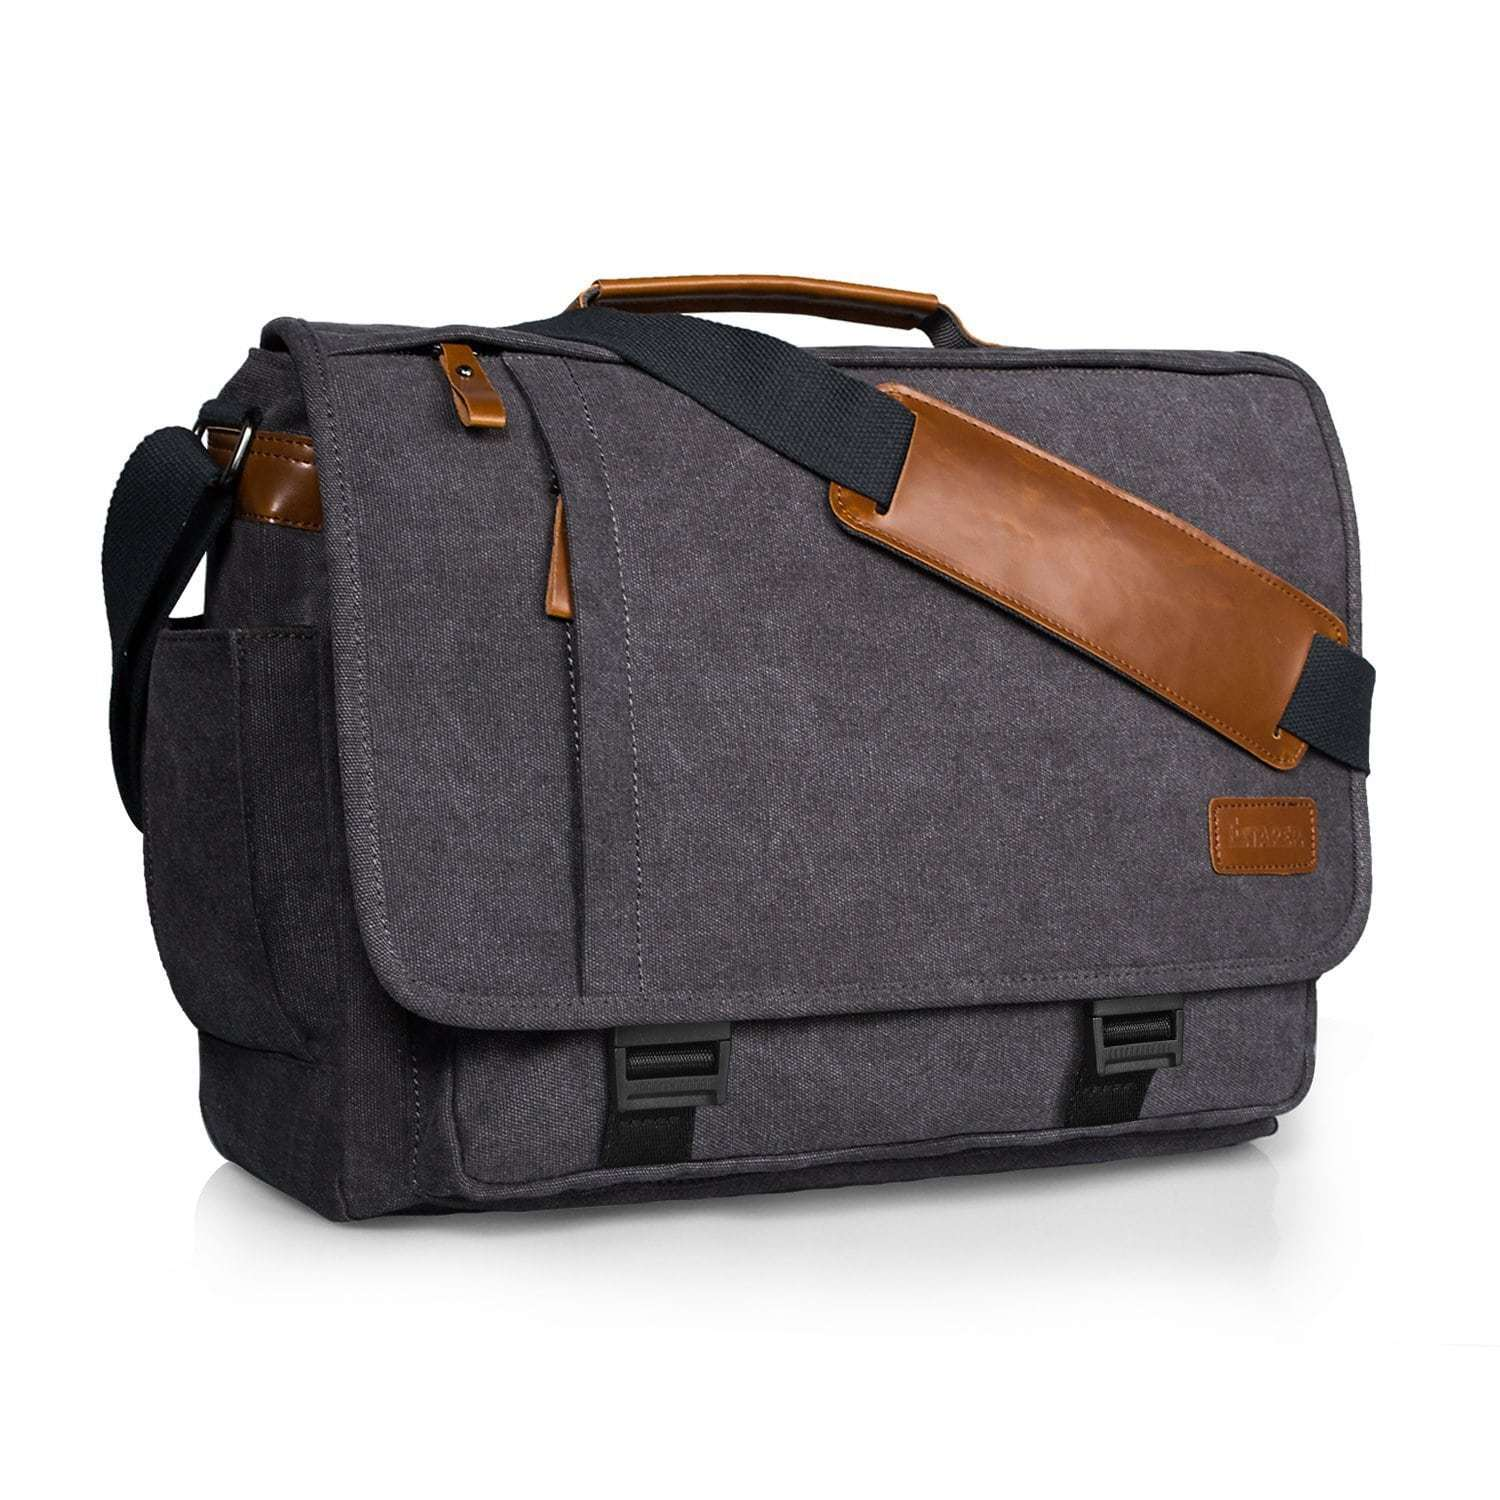 "Best oversized laptop bag Estarer 17.3"" Laptop Messenger Bag"